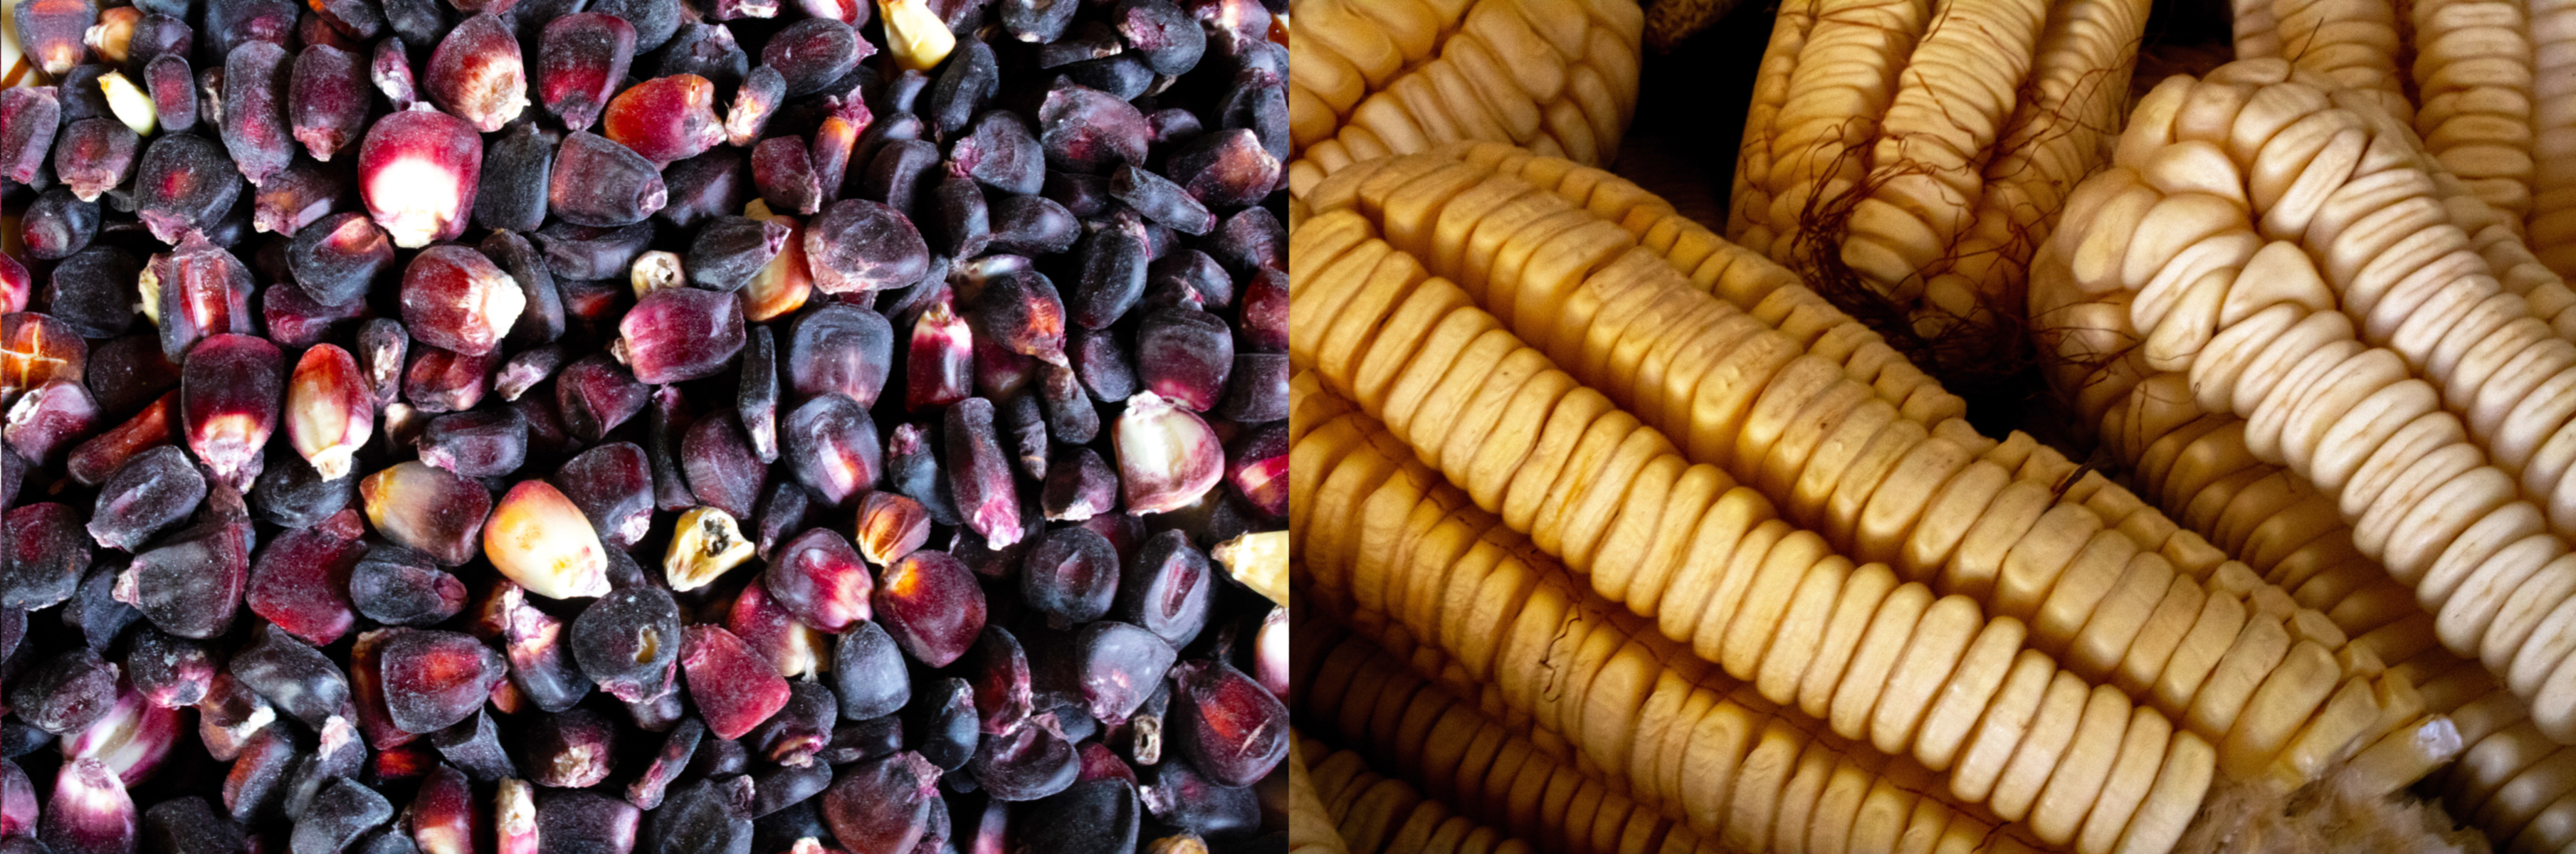 Maíz colorado (left), or red maize, is an important part of the family's diet. The family's Ancho maize (right) has characteristically wide and flat kernels, and is a key ingredient of the pozole stew. (Photo: E. Orchardson/CIMMYT)